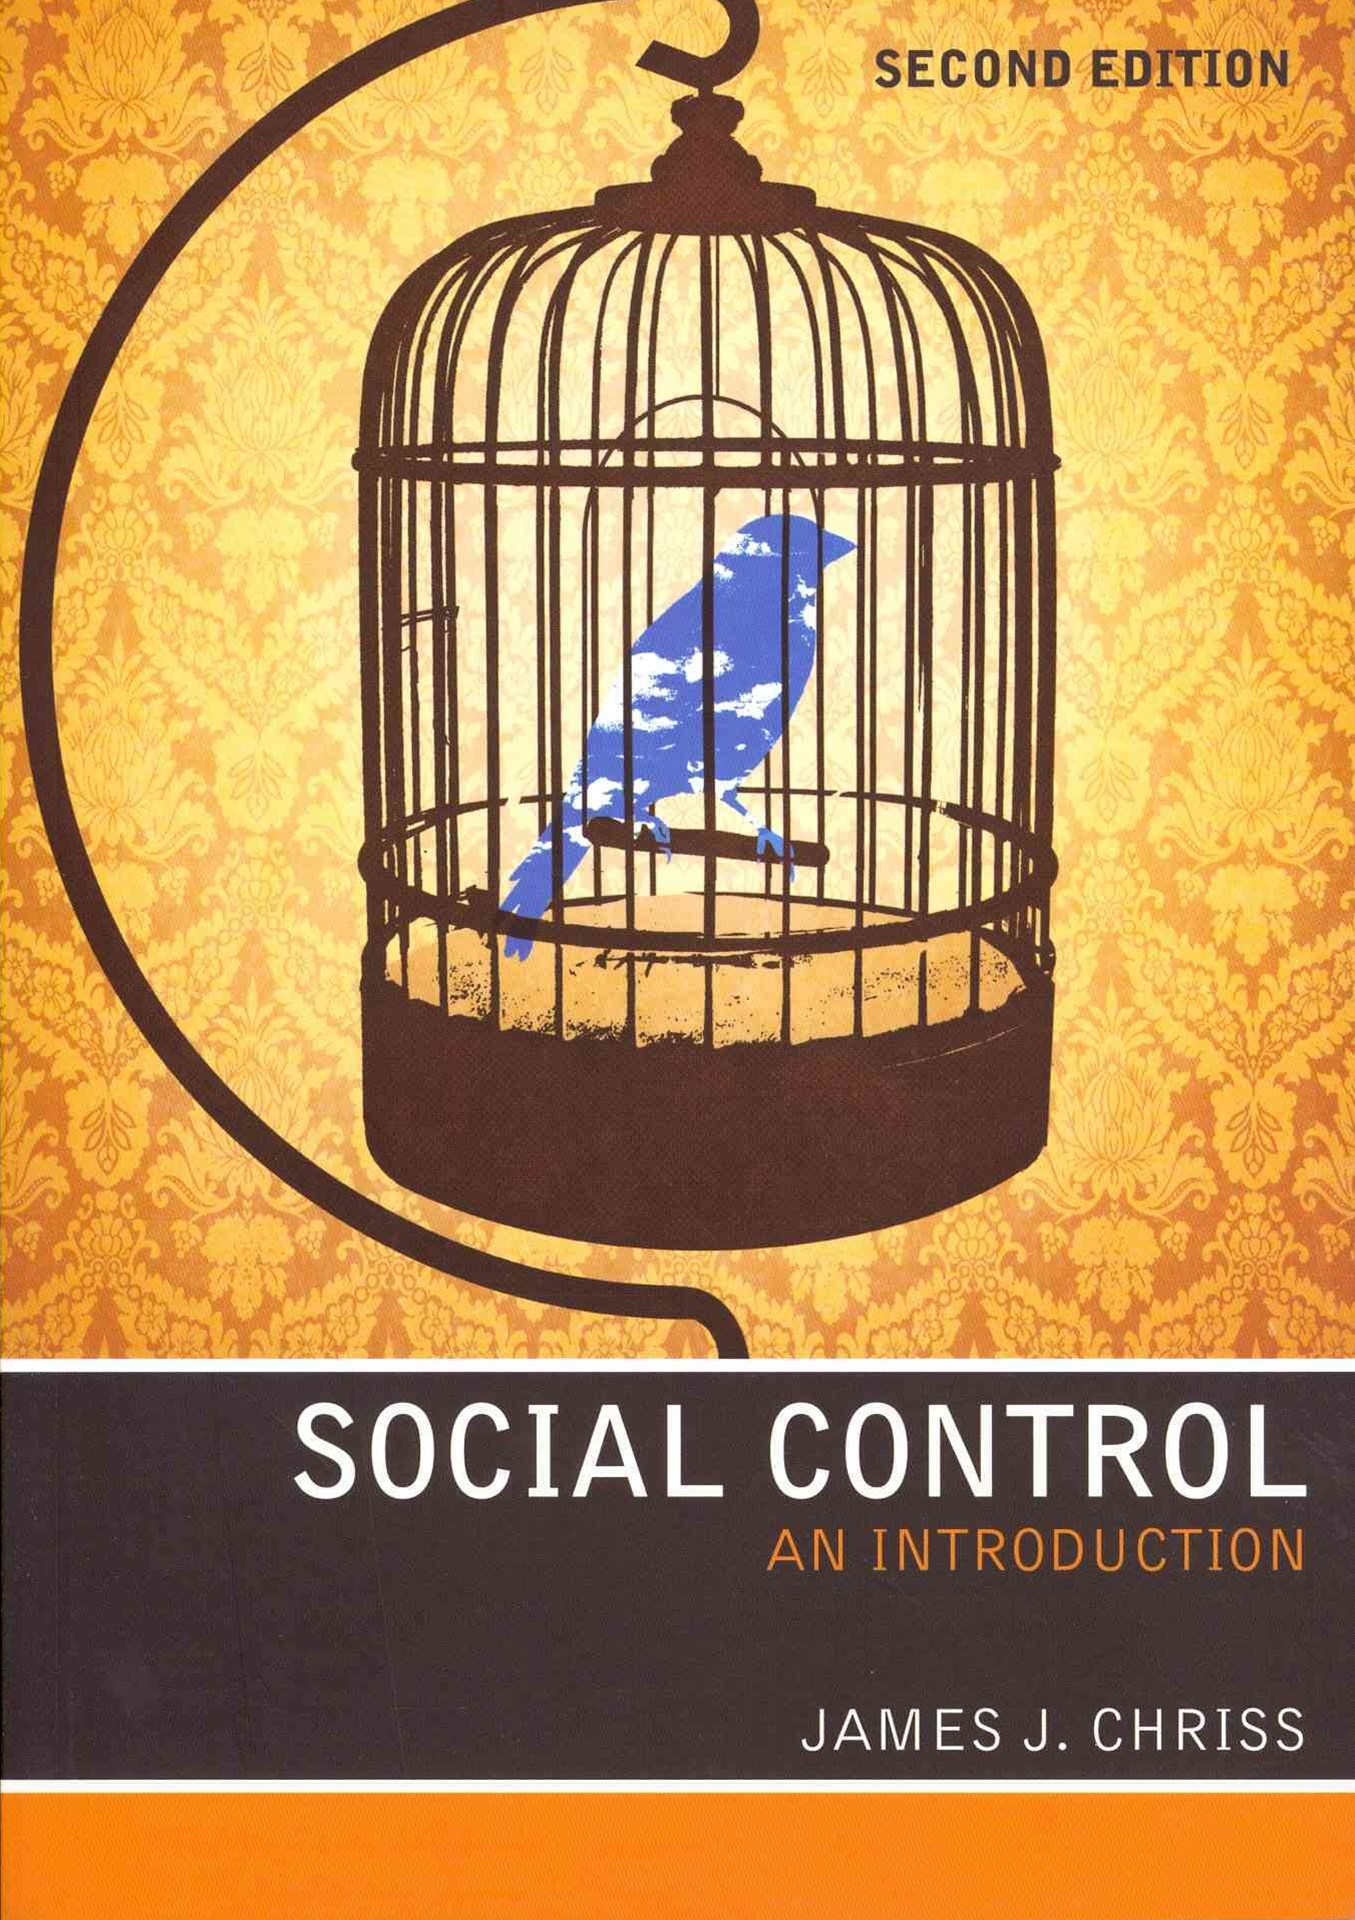 Social Control - an Introduction 2E